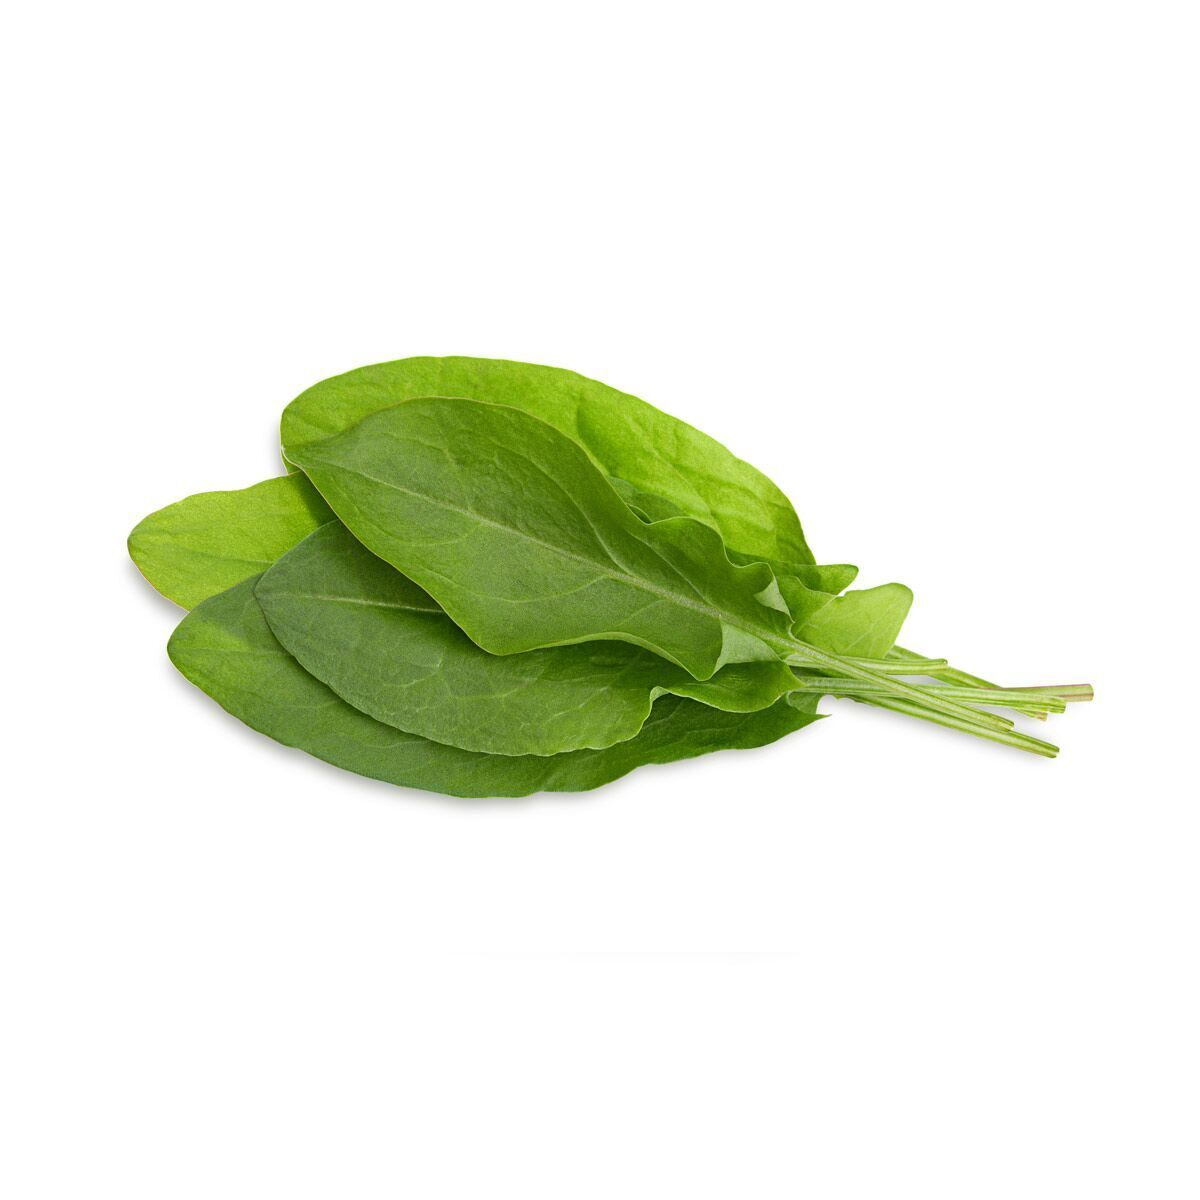 Green_Sorrel_1200x1200_preview.jpg